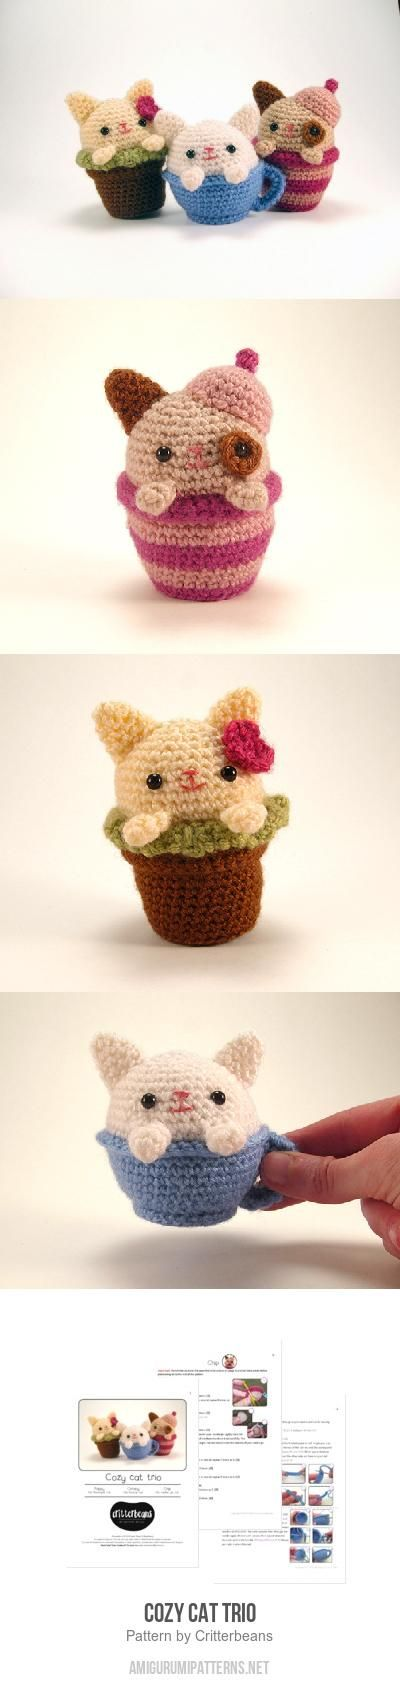 Cozy Cat Trio Amigurumi Pattern